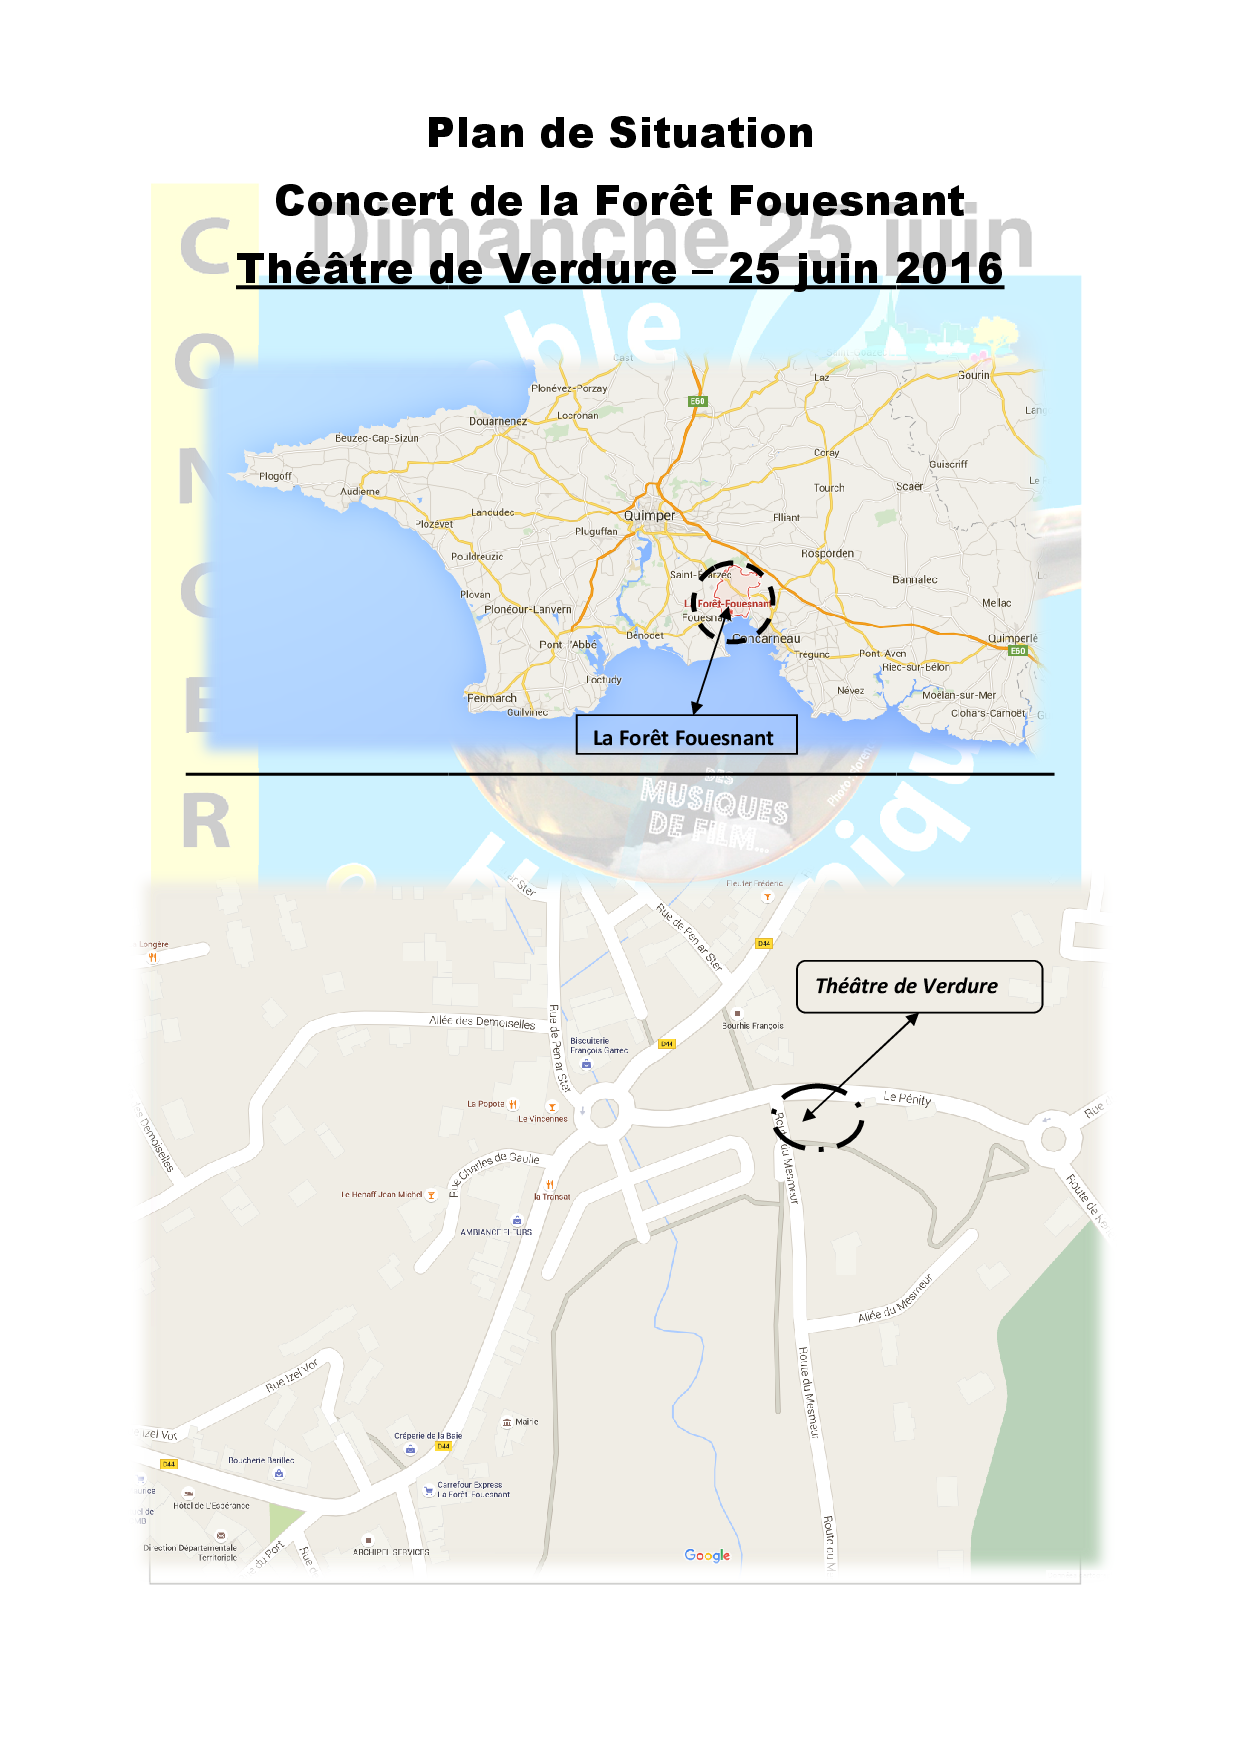 Plan situation foret fouesnant 250616.png